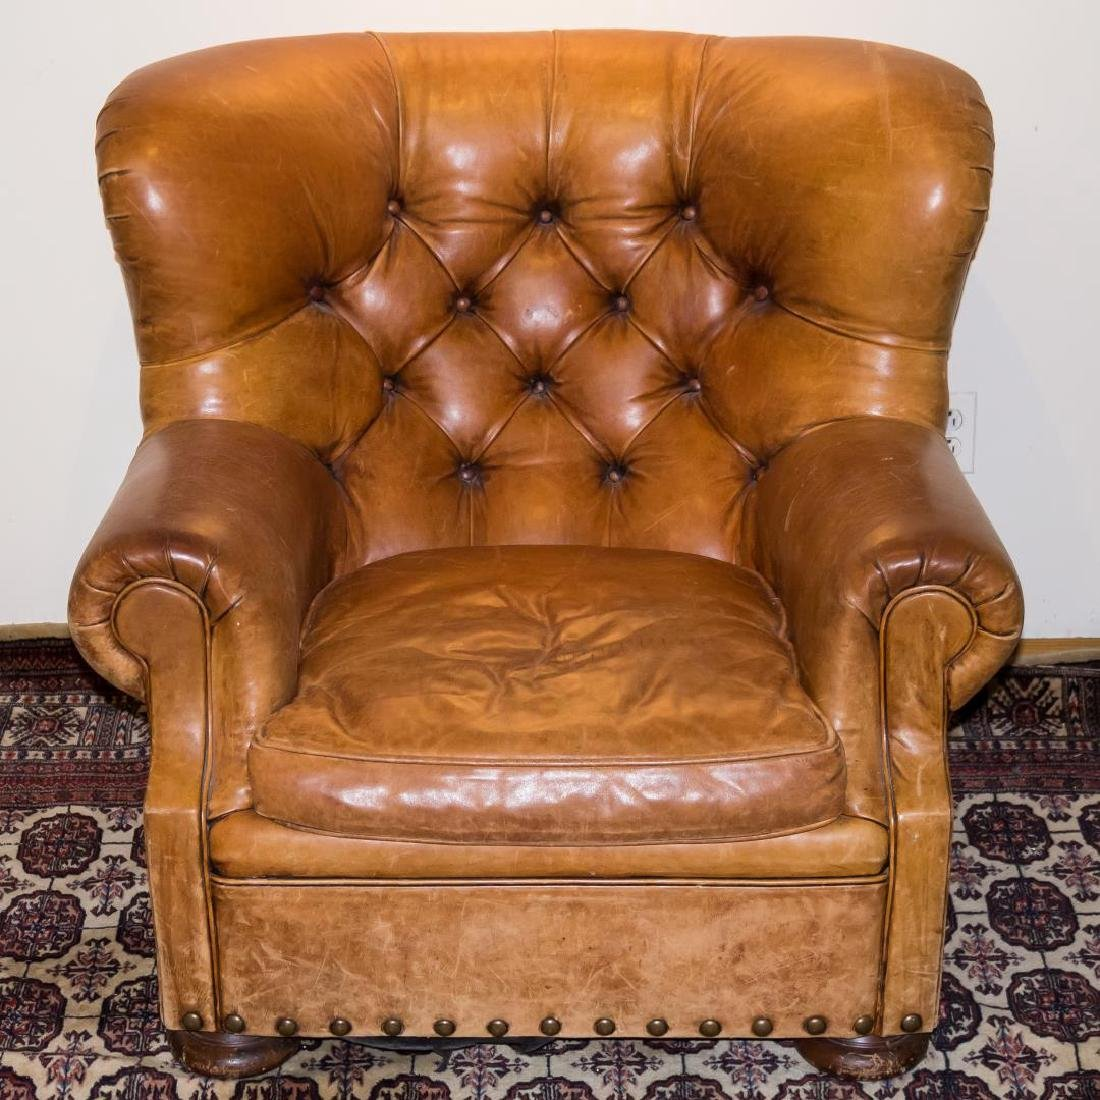 Ralph Lauren Overstuffed Leather Club Chair - 2